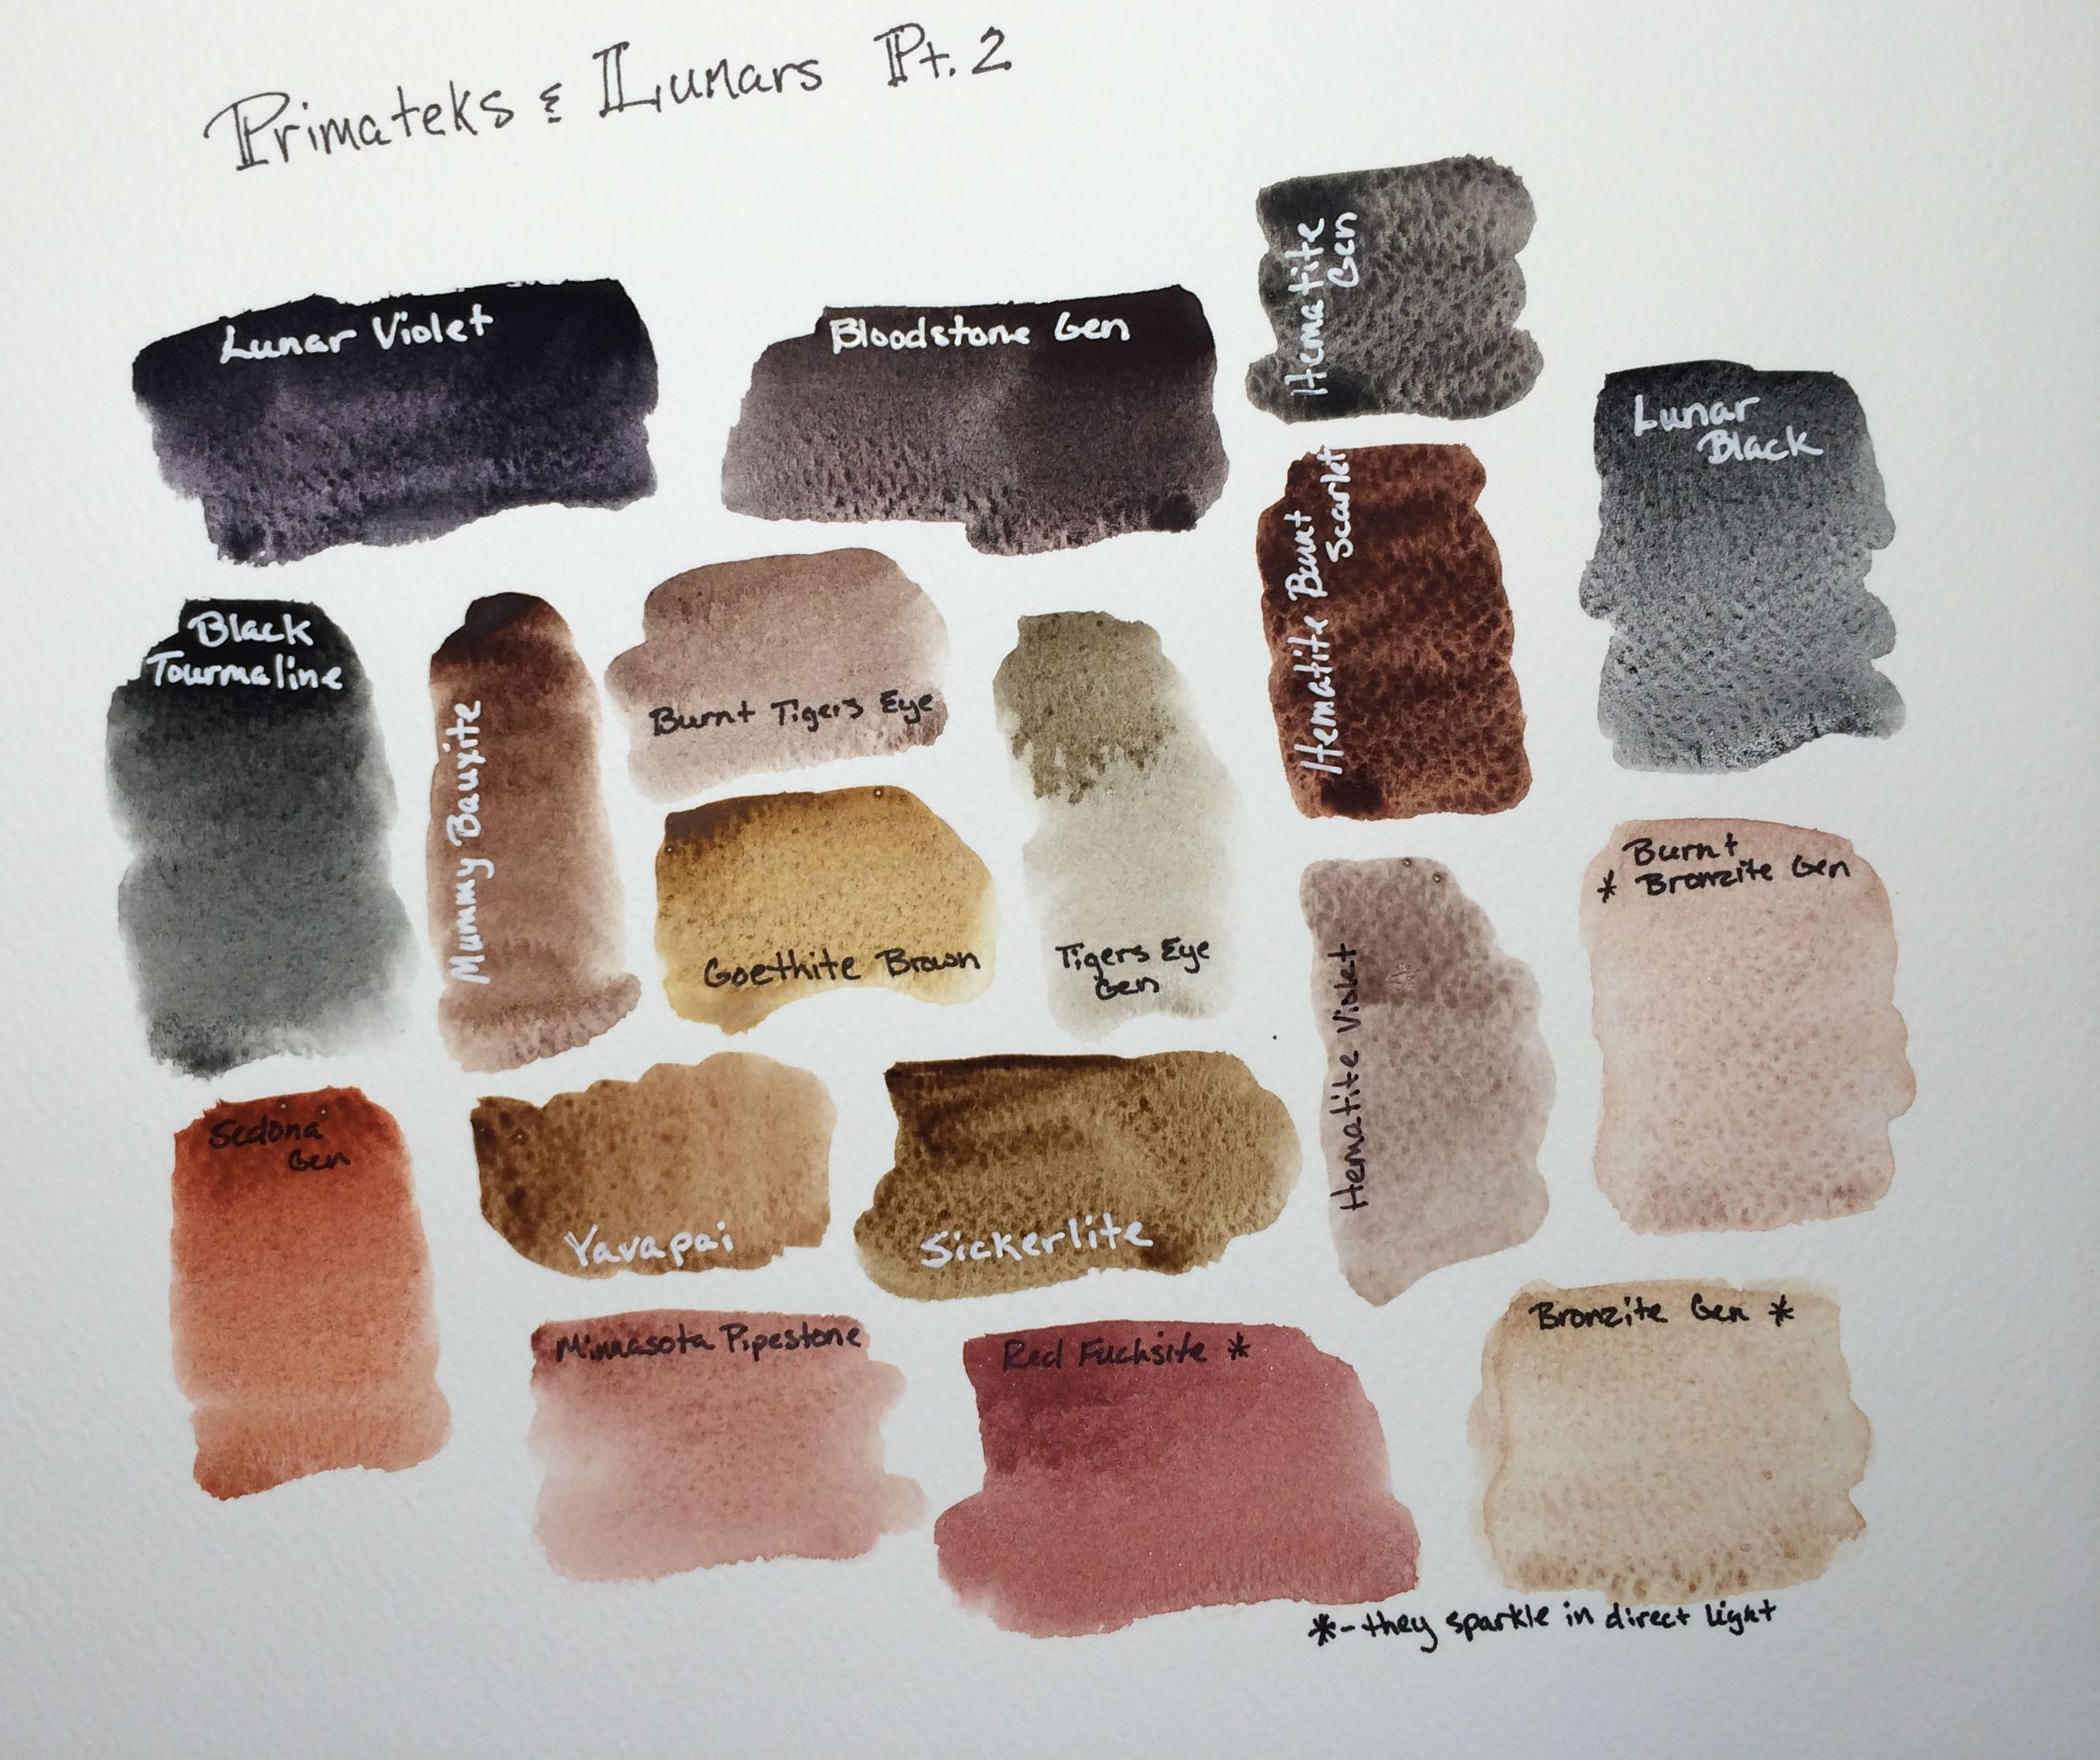 Daniel Smith Primatek And Lunars Watercolors Part 2 Watercolor